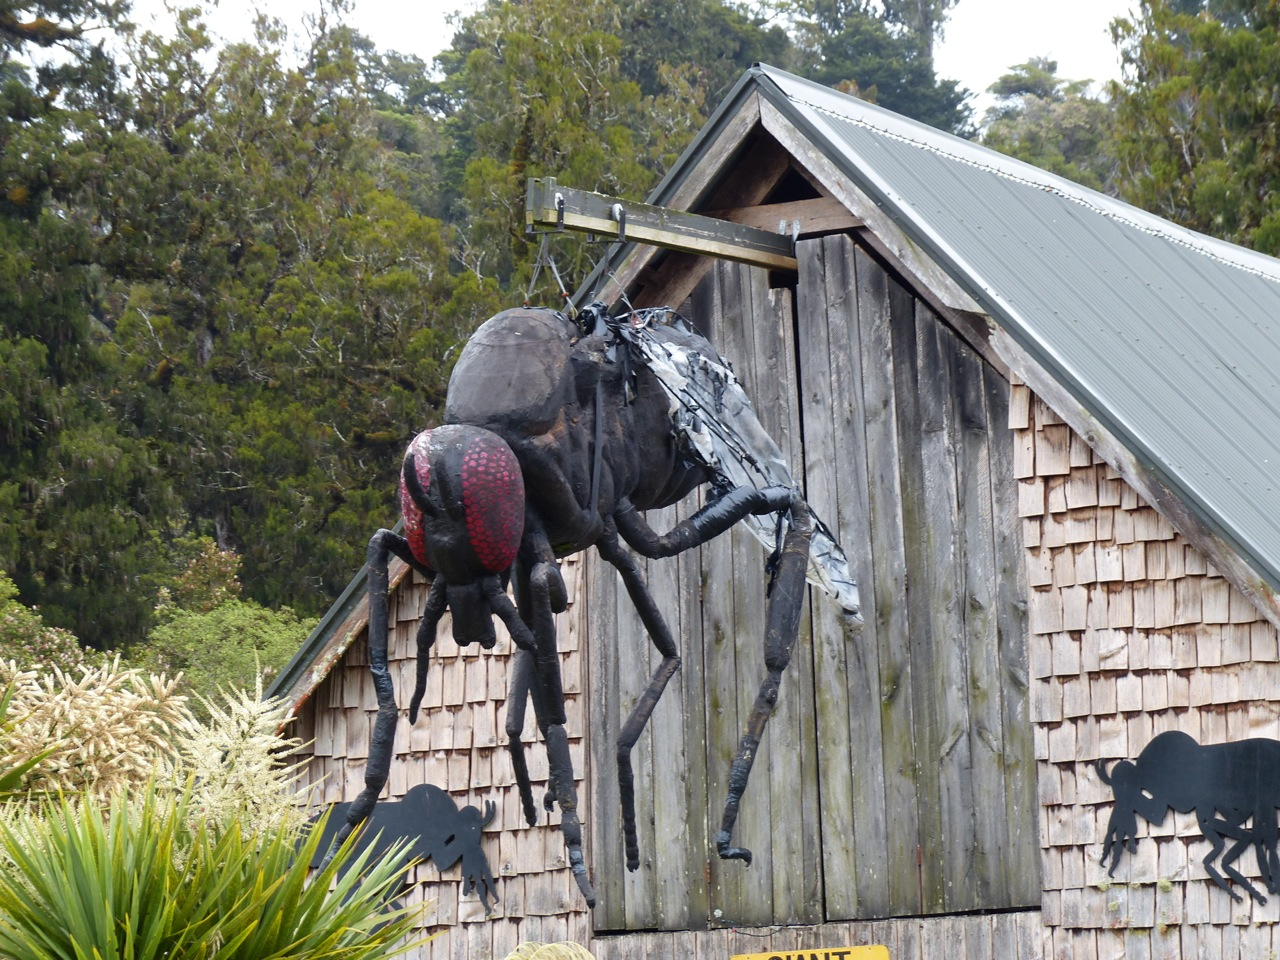 Excellent road side store in Pukekura (that's the world's largest sand fly escaping from the attic)